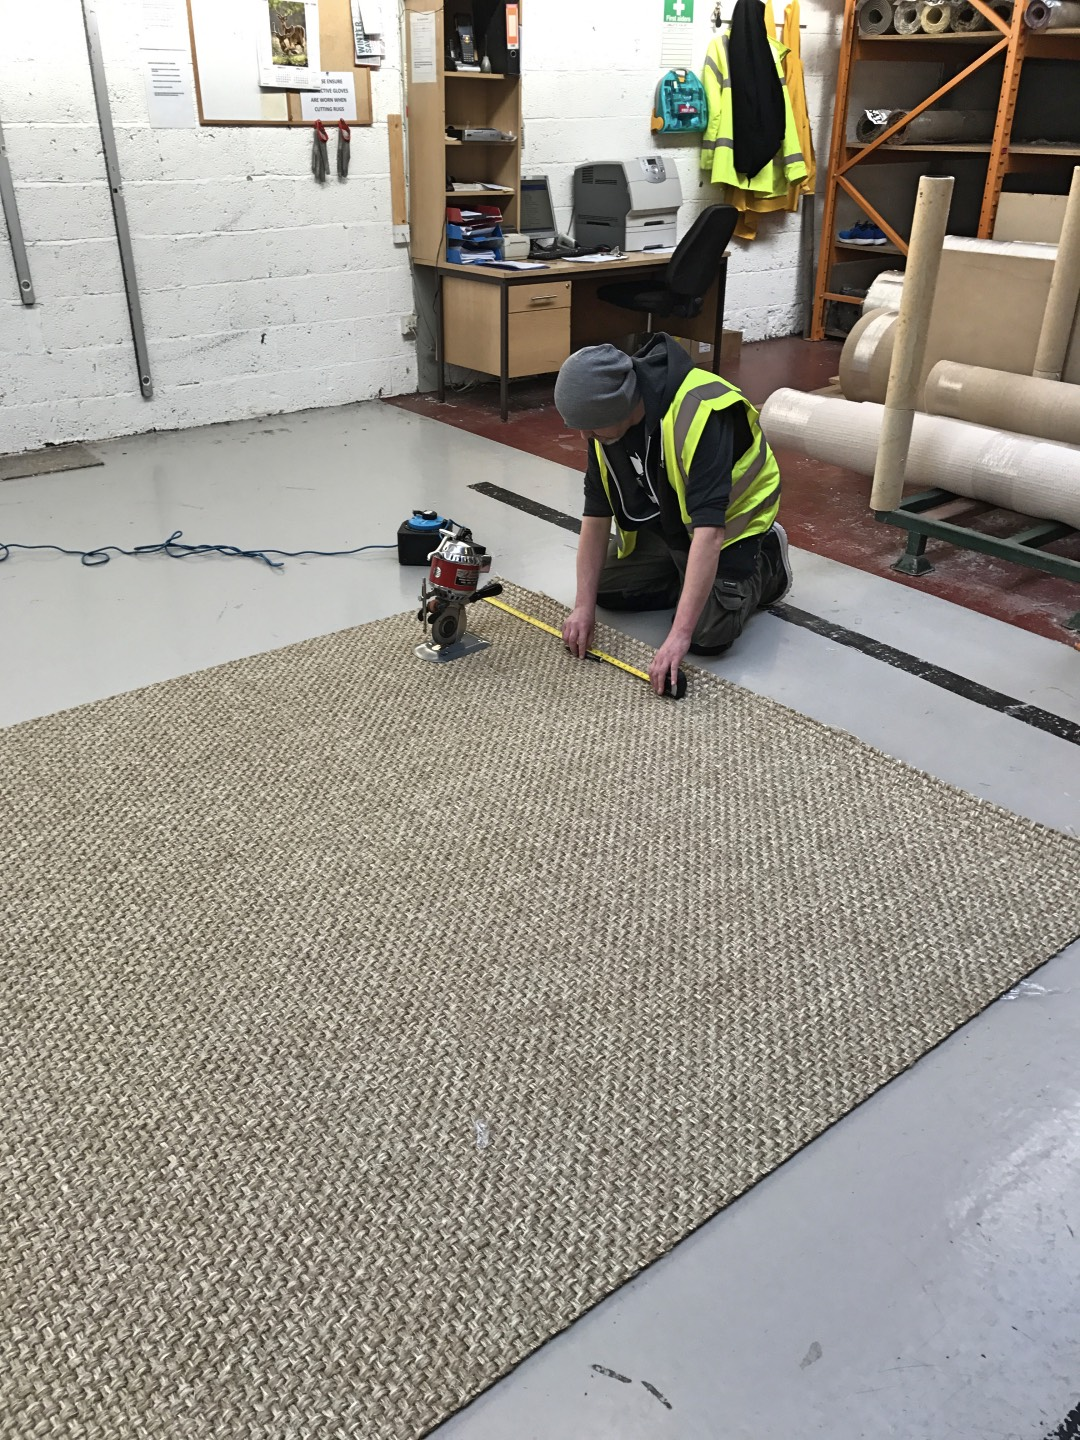 Creating A Bespoke Rug With Crucial Trading